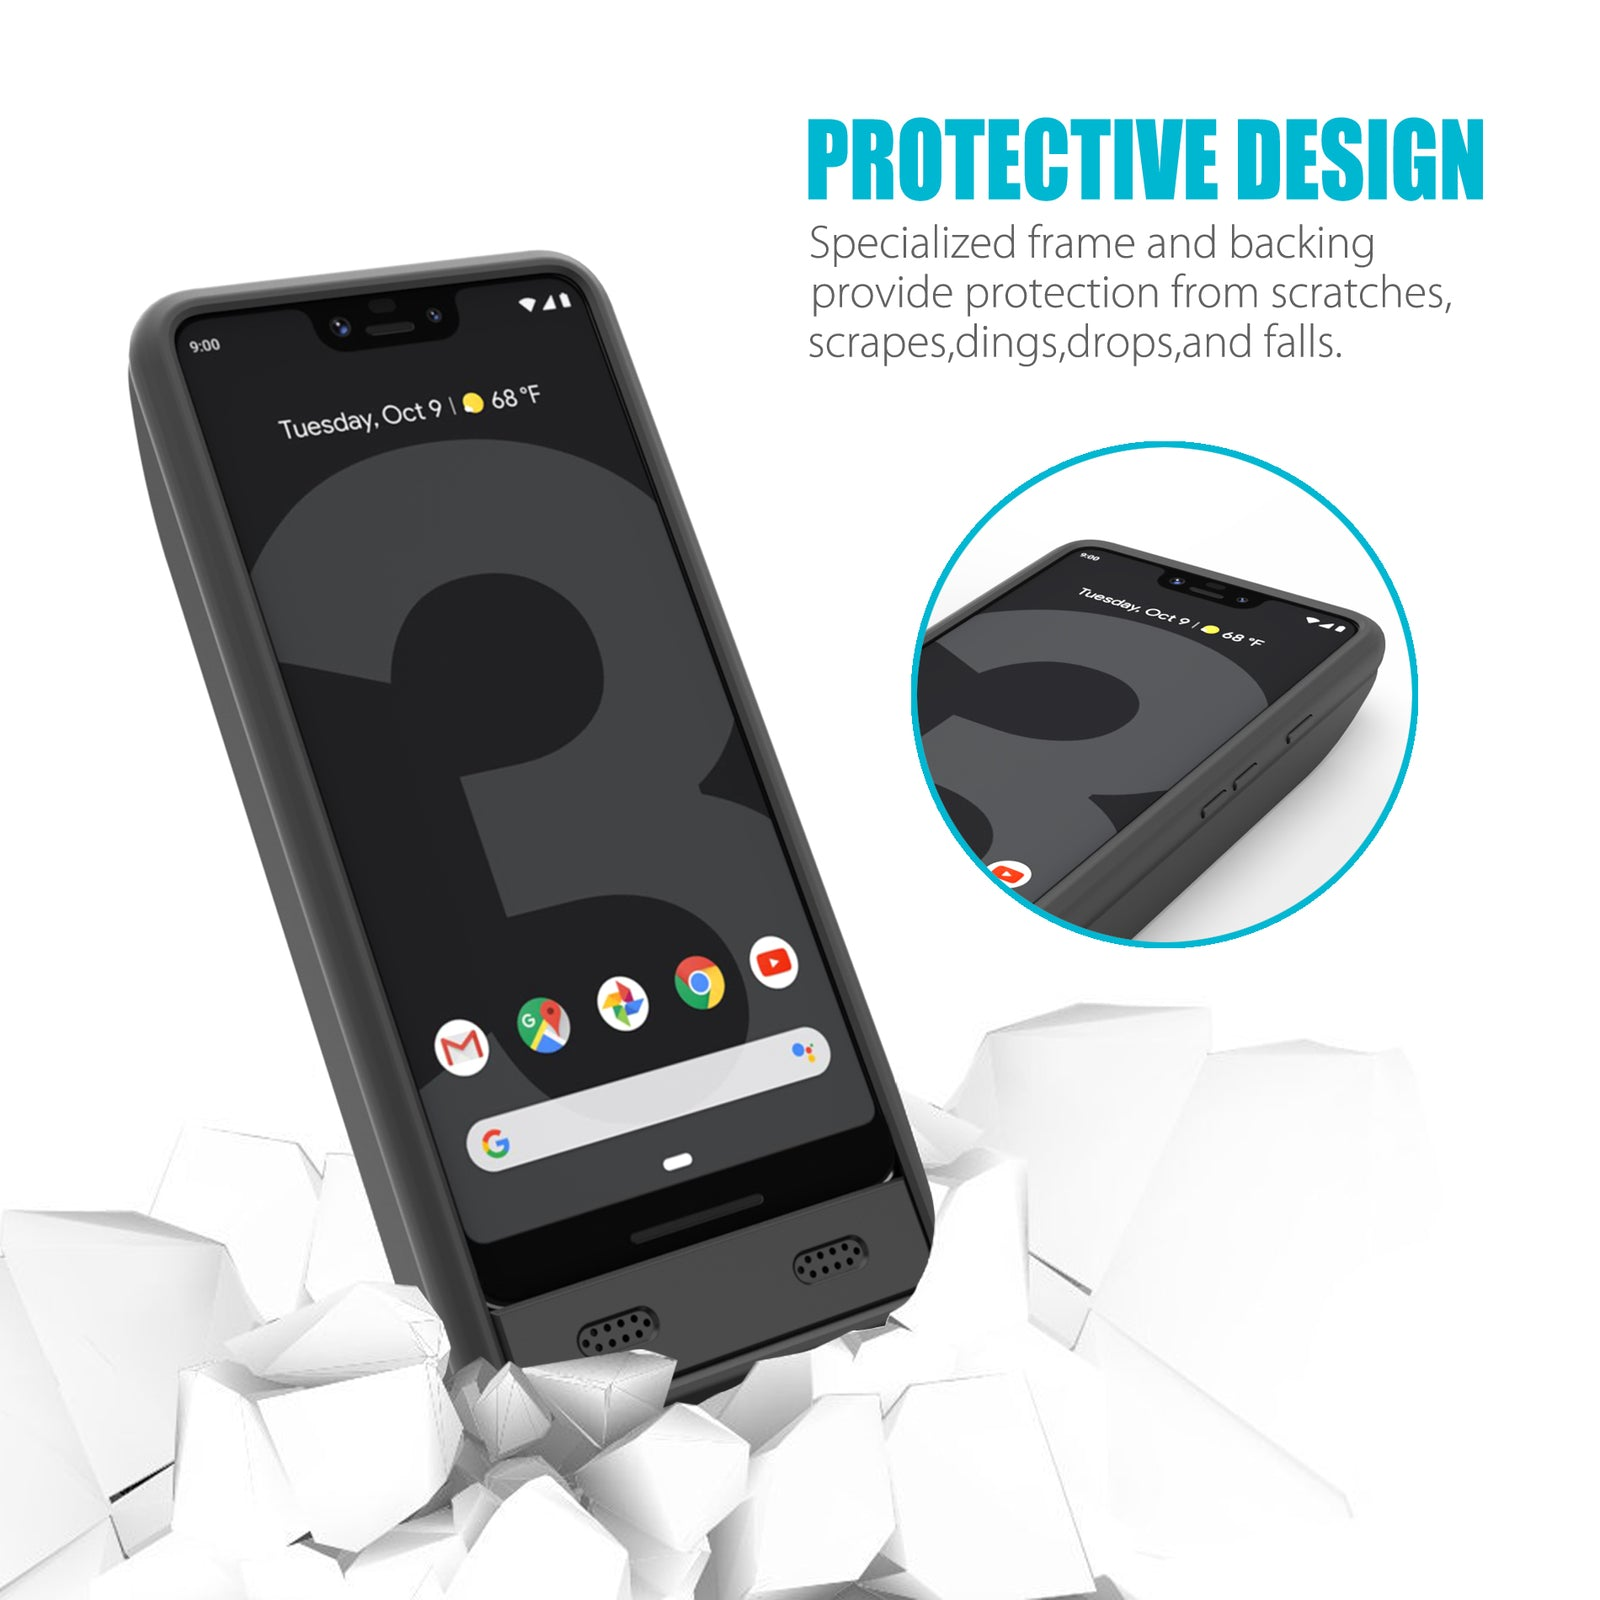 Google Pixel 3 XL 8500mAh Extended Battery Case [Shipping to US Only]